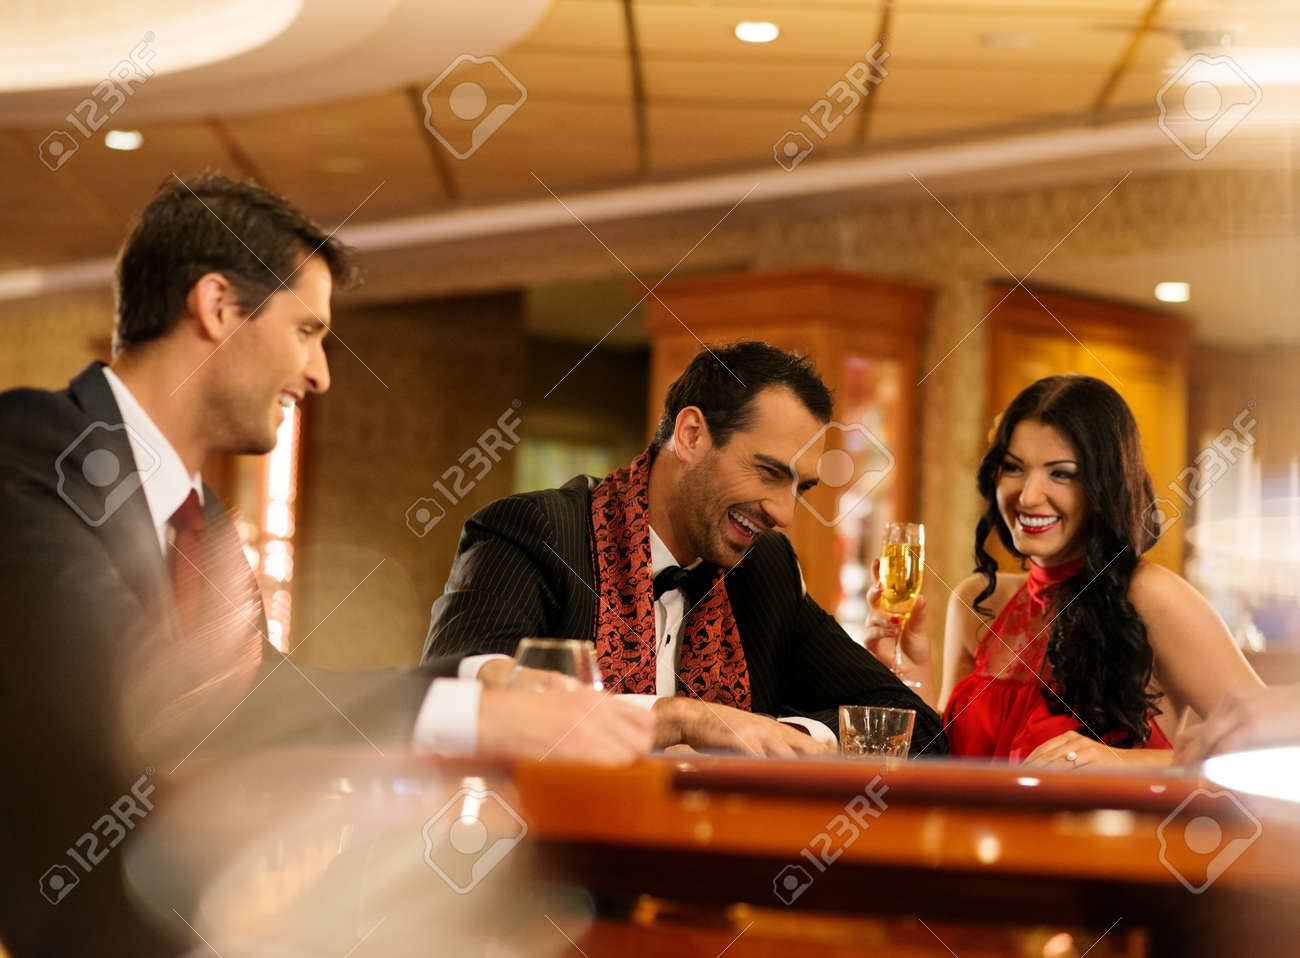 Happy young people sitting with drinks behind table Stock Photo - 20046791